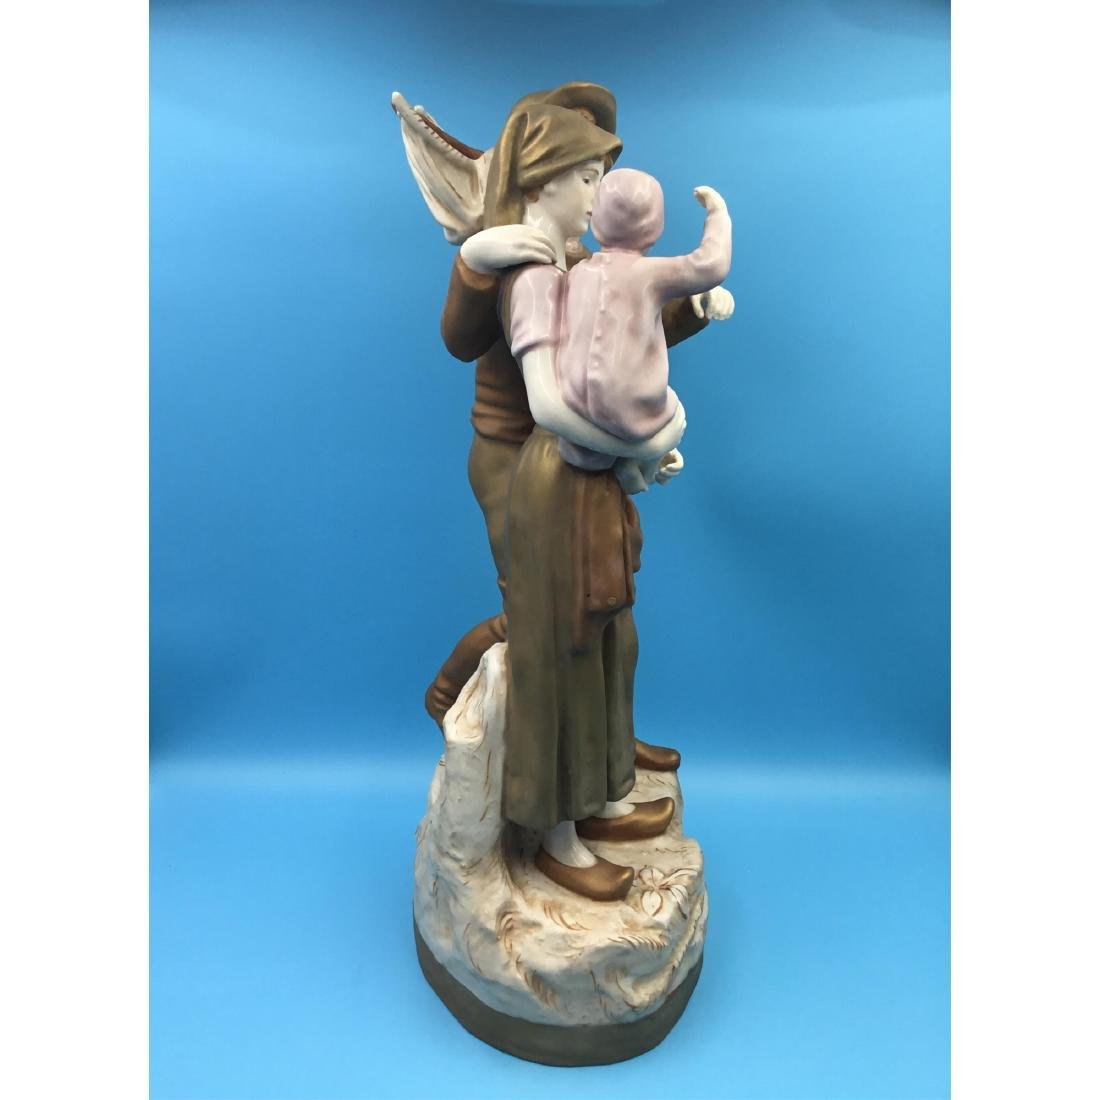 LARGE ROYAL DUX BOHEMIAN PORCELAIN SCULPTURE - 4